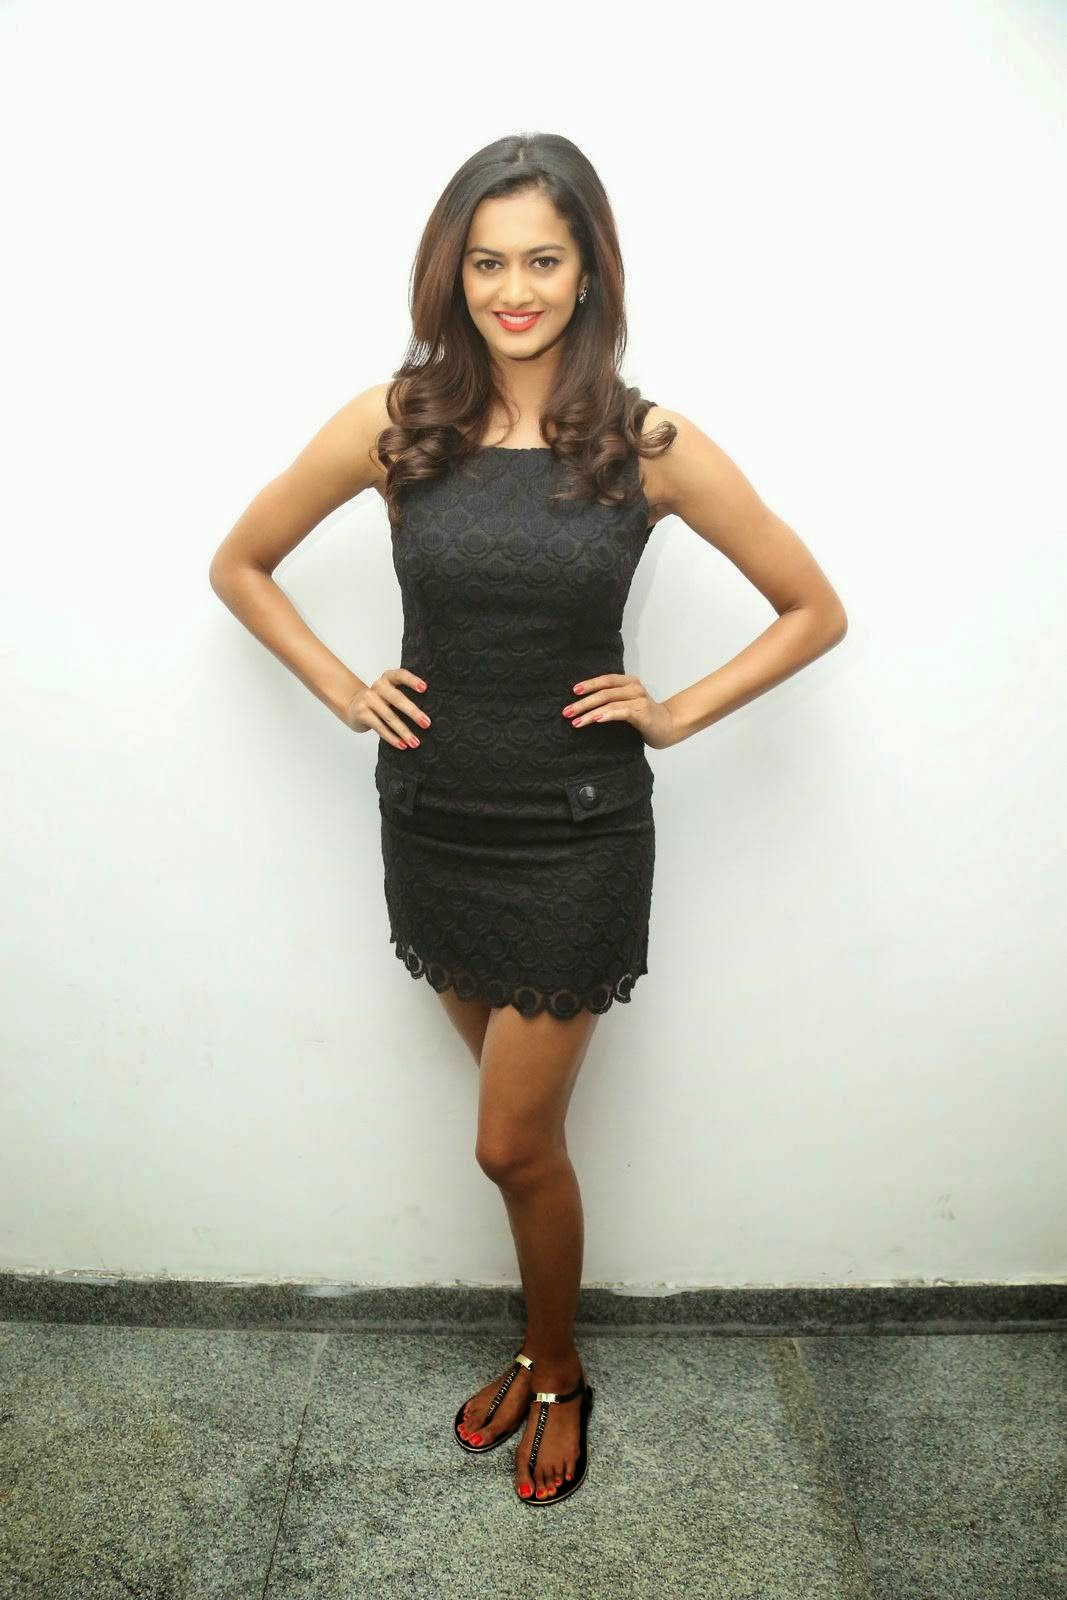 Shubra Aiyappa Latest Photo Gallery, Shubra Aiyappa Sexy Hot Figure images in Black Dress